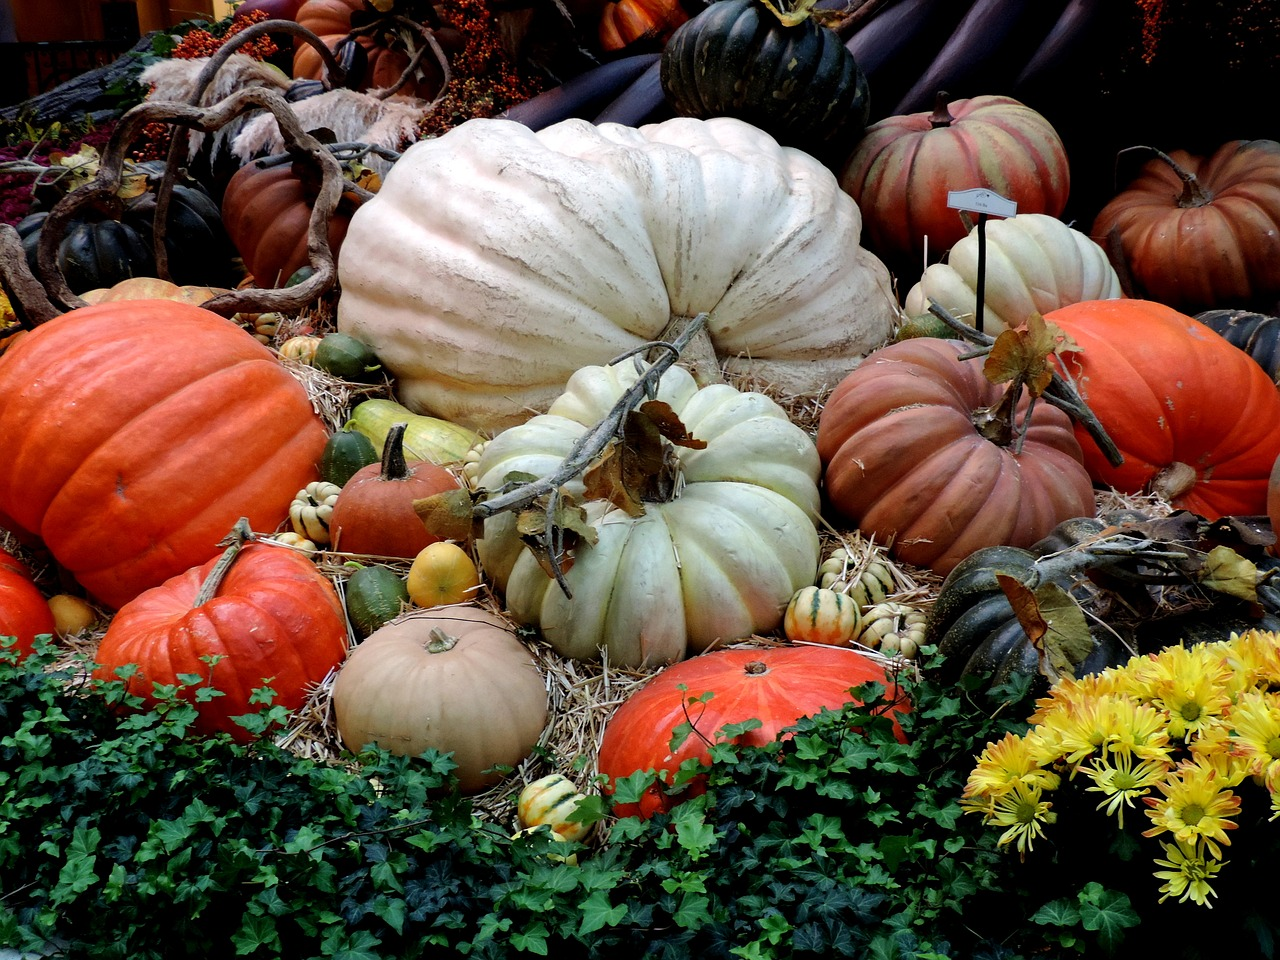 pumpkin-patch-2783707_1280.jpg